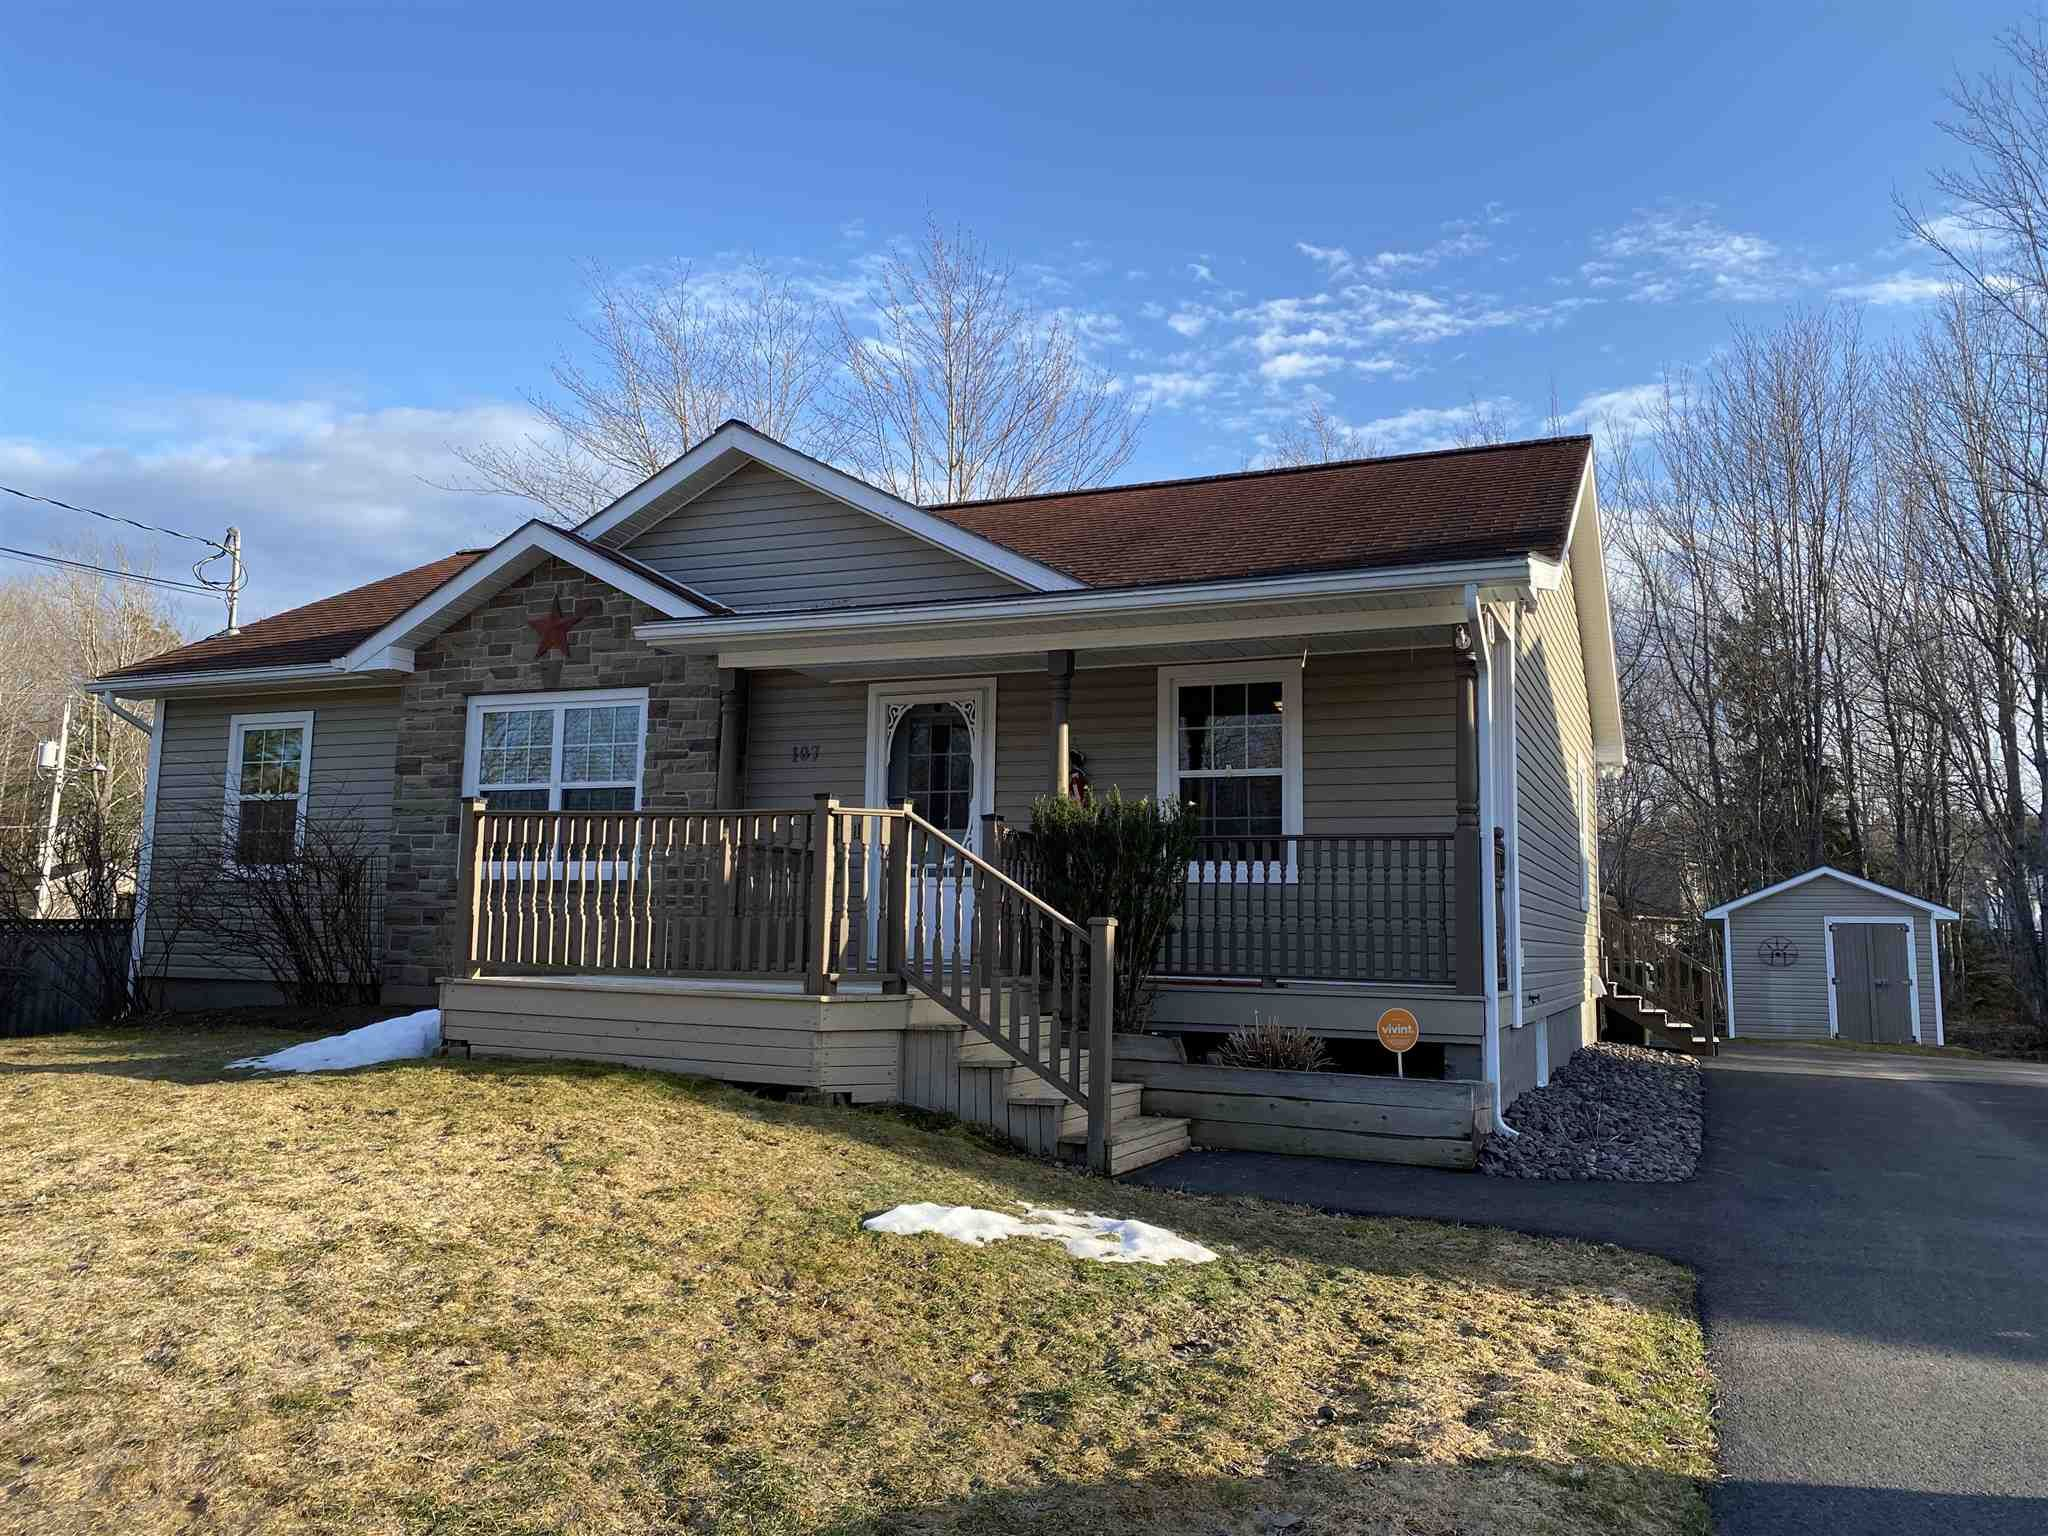 Main Photo: 107 Juniper Street in Stellarton: 106-New Glasgow, Stellarton Residential for sale (Northern Region)  : MLS®# 202106476